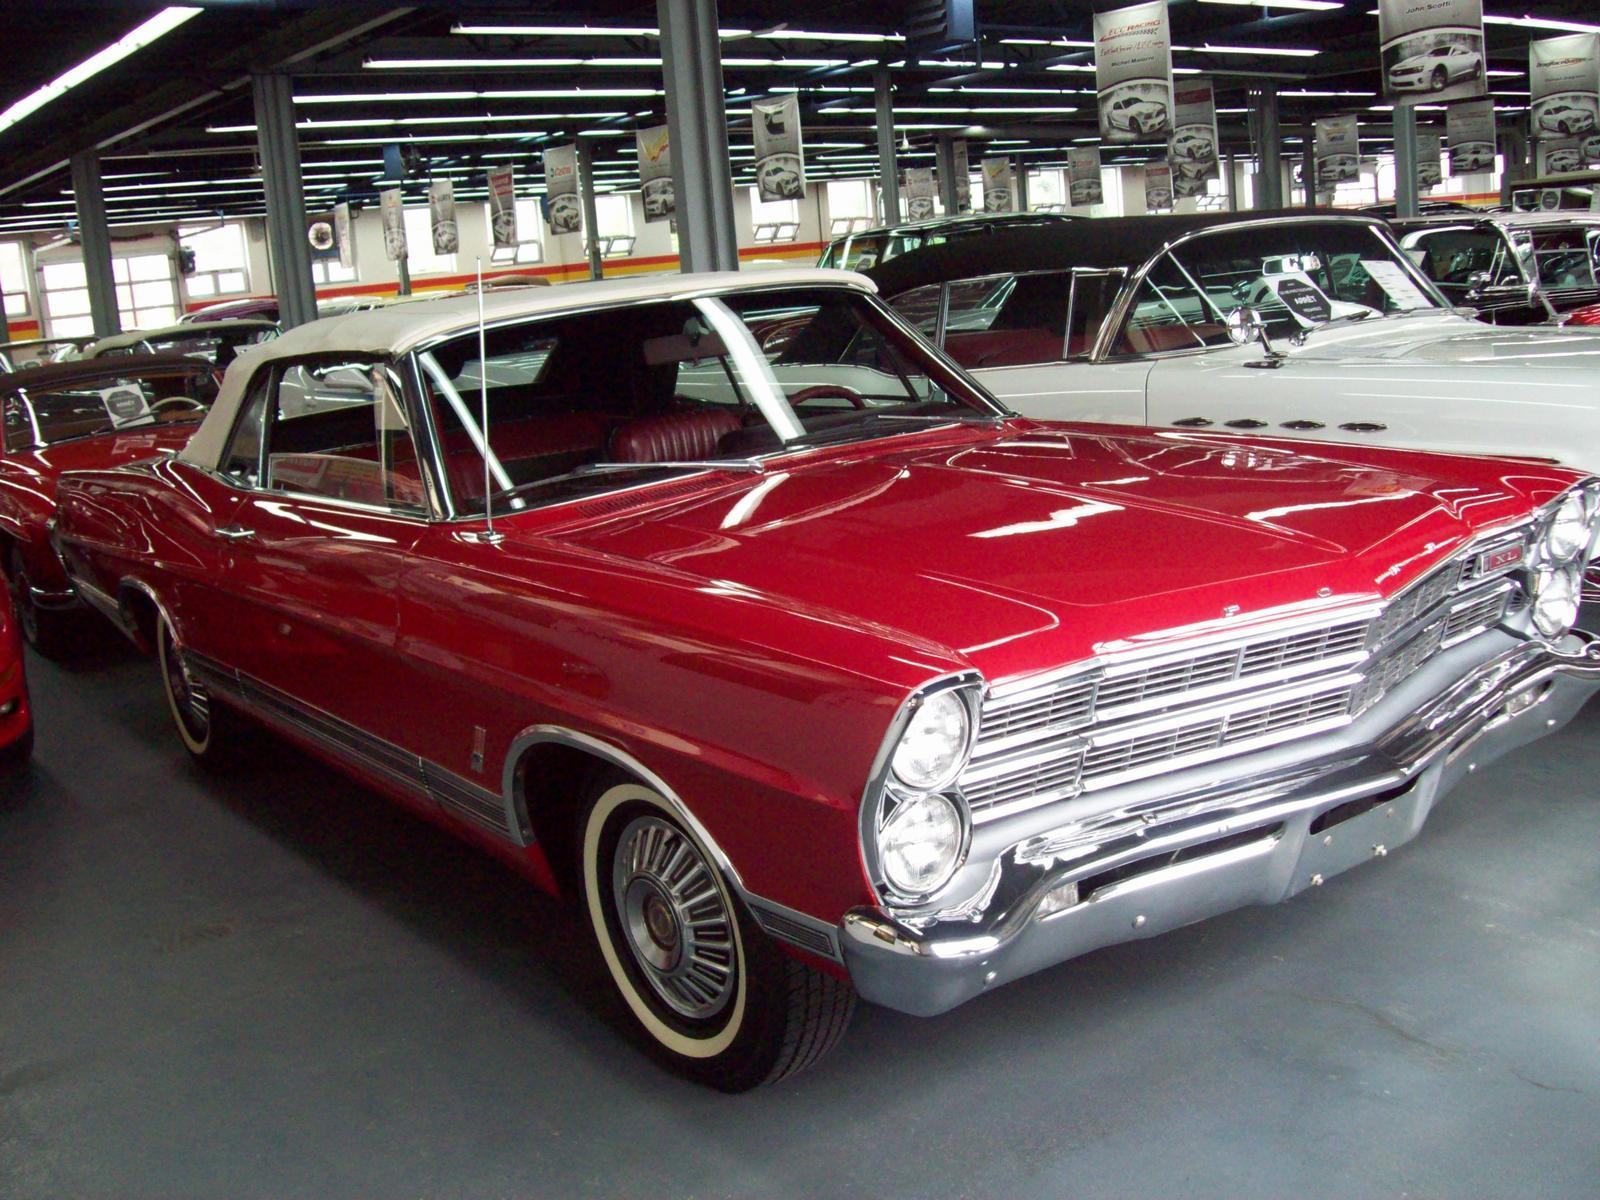 Ford Galaxie 500 Wallpapers